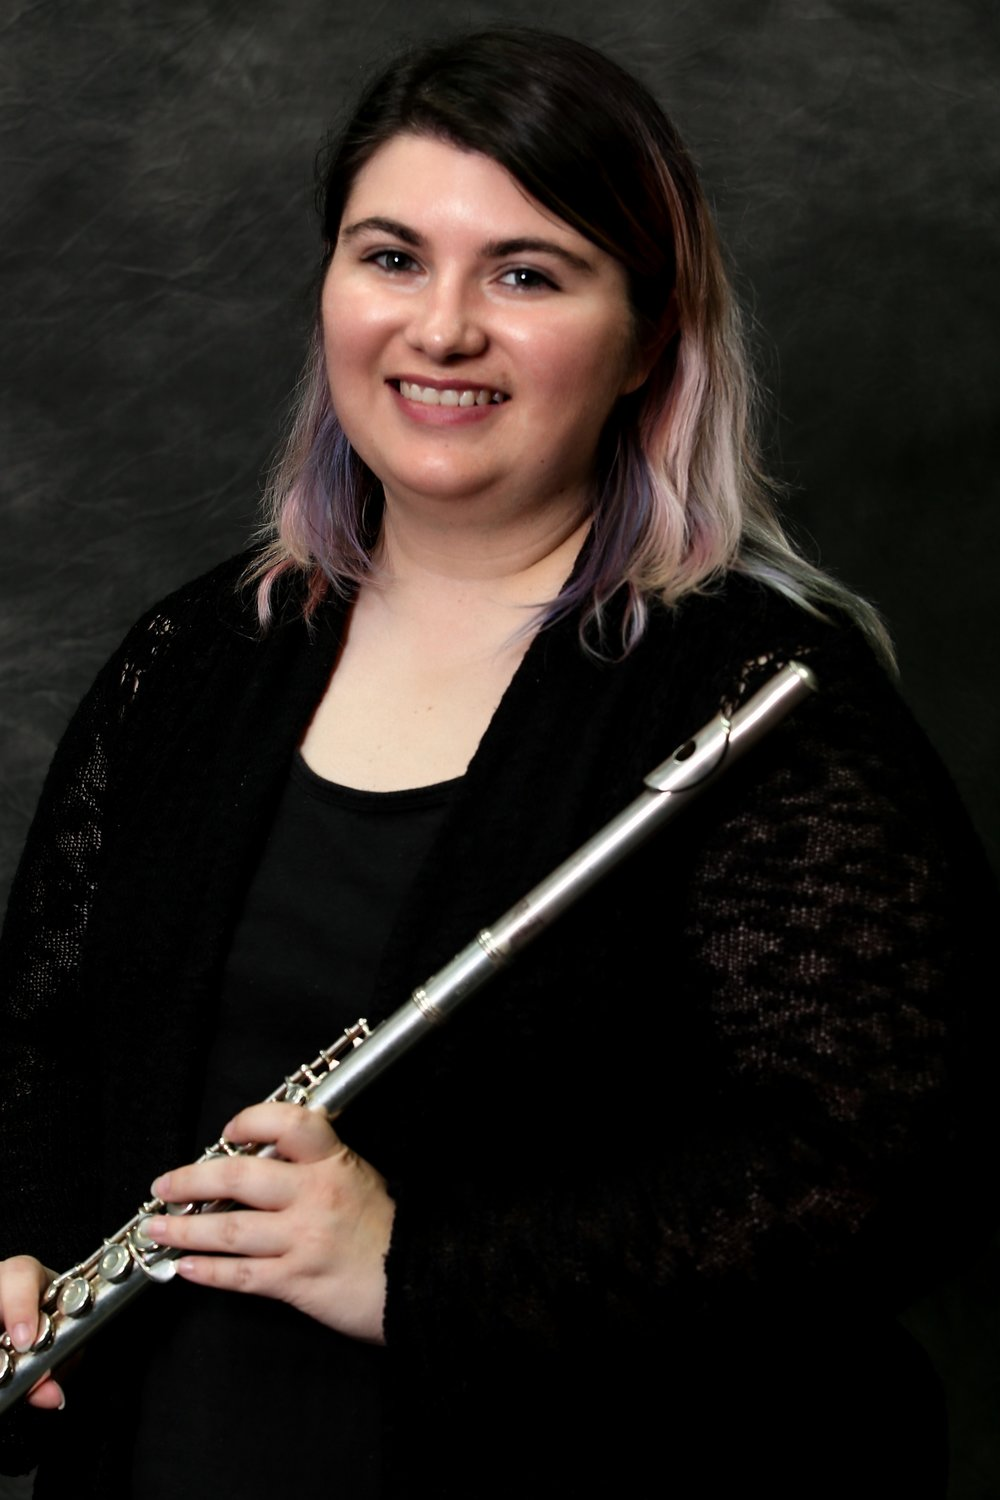 Erin Woodman, Orchestra Manager - Erin Woodman is a New Hampshire native and received her B.A. in Music from St. Michael's College in Colchester, VT. She moved to Plant City after graduating in May of 2015. A flute has been in her hands since the age of 8, and singing has been her favorite past time since she was 5. In high school and college, she performed throughout New England in various concerts and festivals. Her love of theater led her to PCE and allowed her to be part of